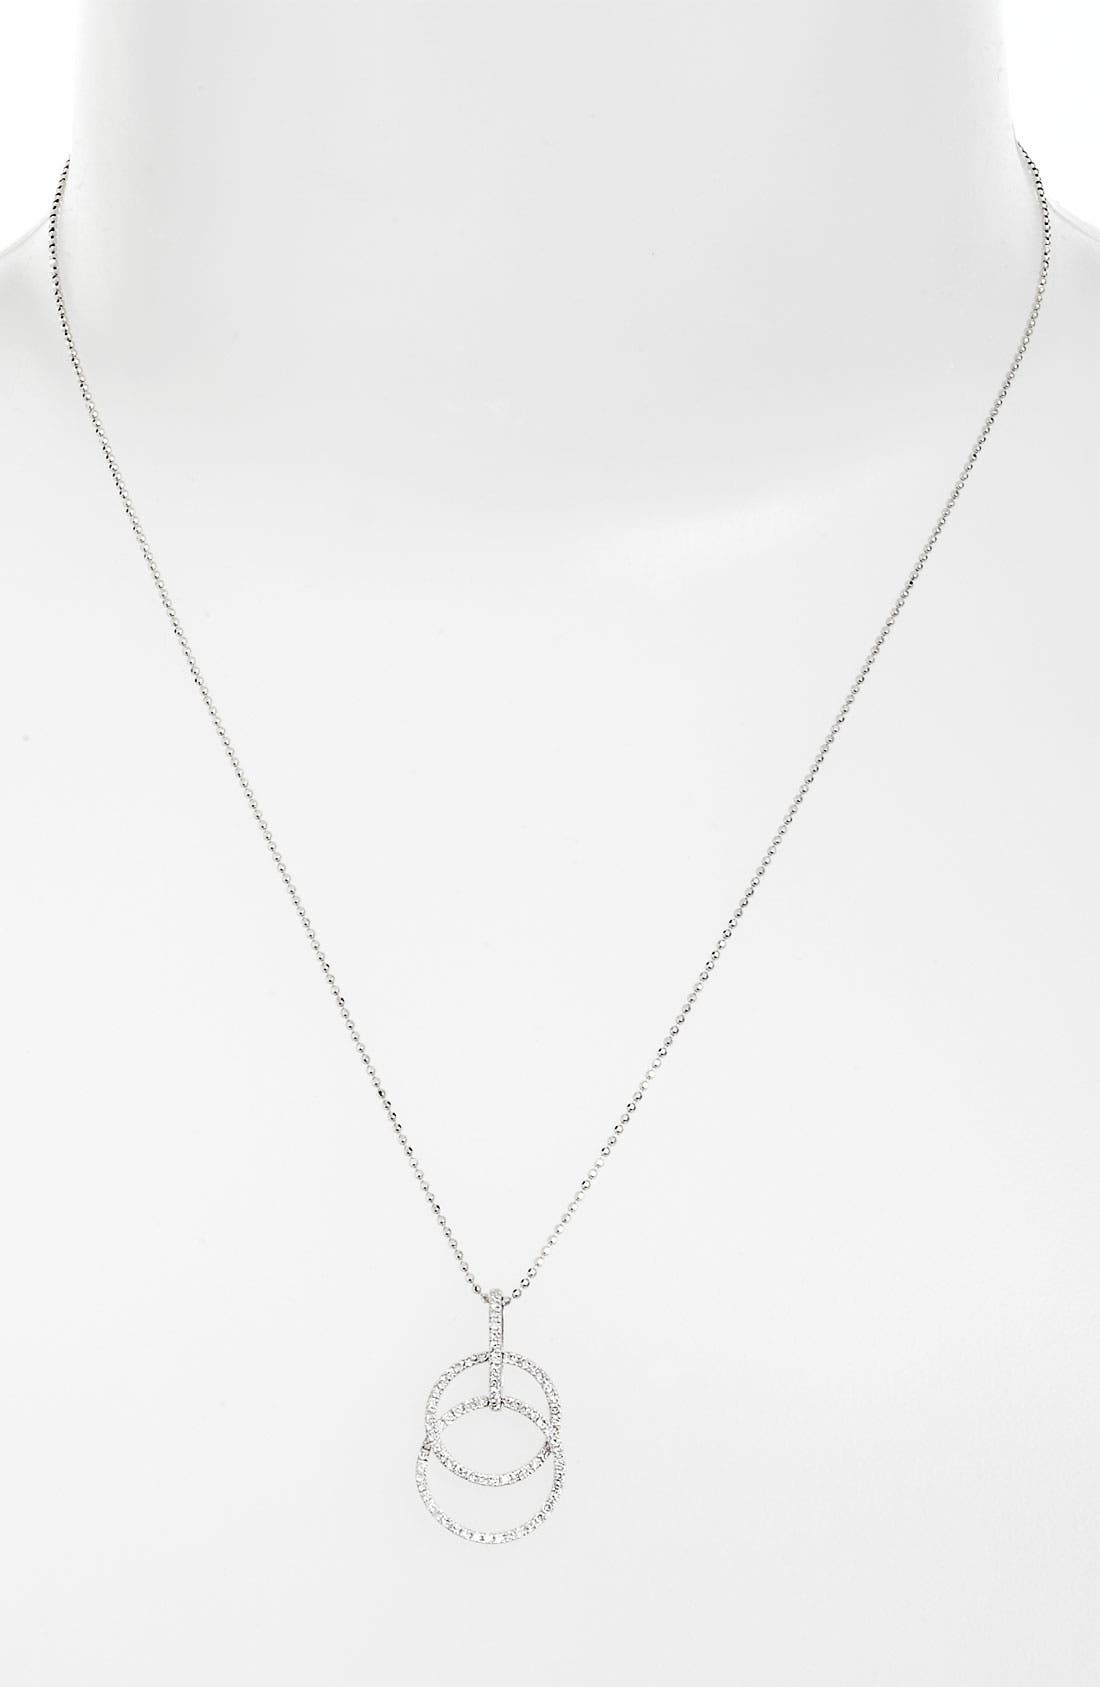 Main Image - Bony Levy 'Circle Links' Diamond Pendant Necklace (Nordstrom Exclusive)